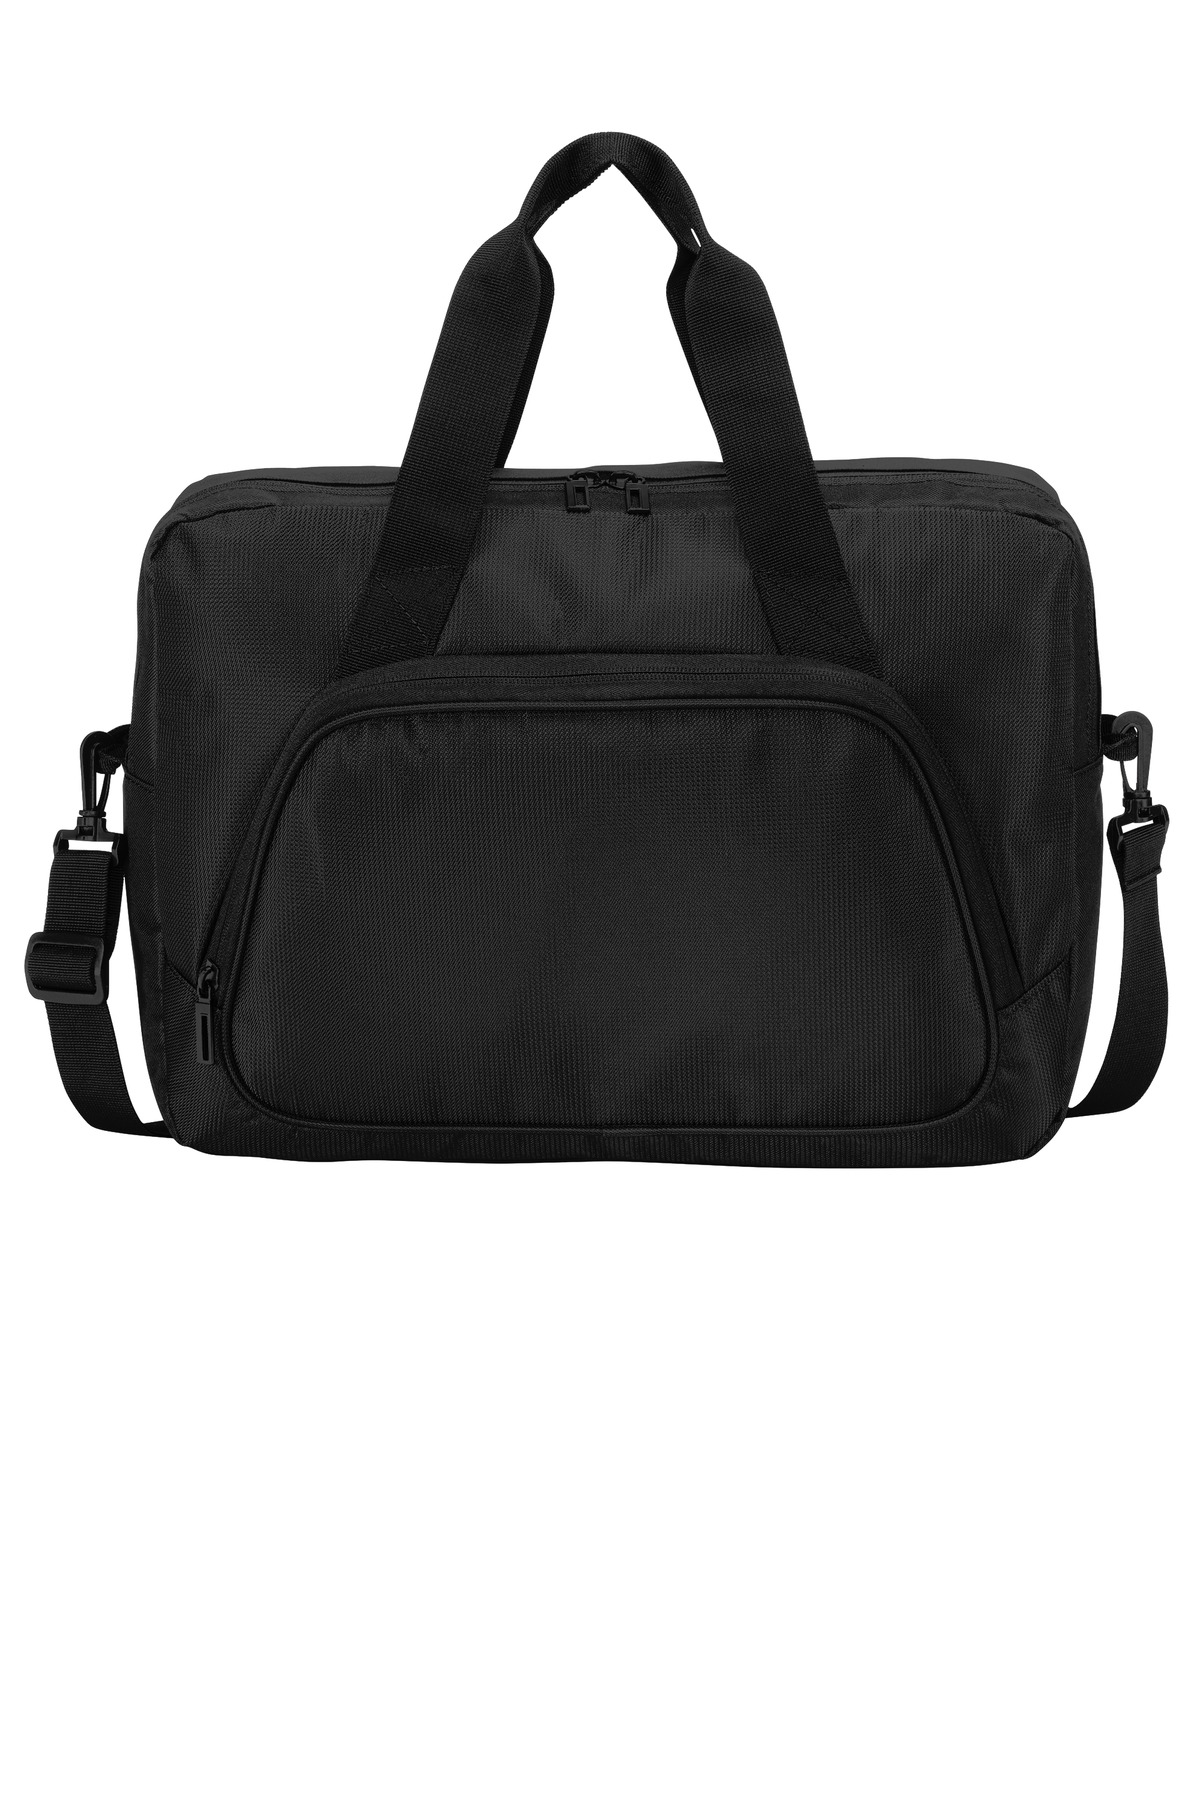 Port Authority  ®  City Briefcase. BG322 - Black